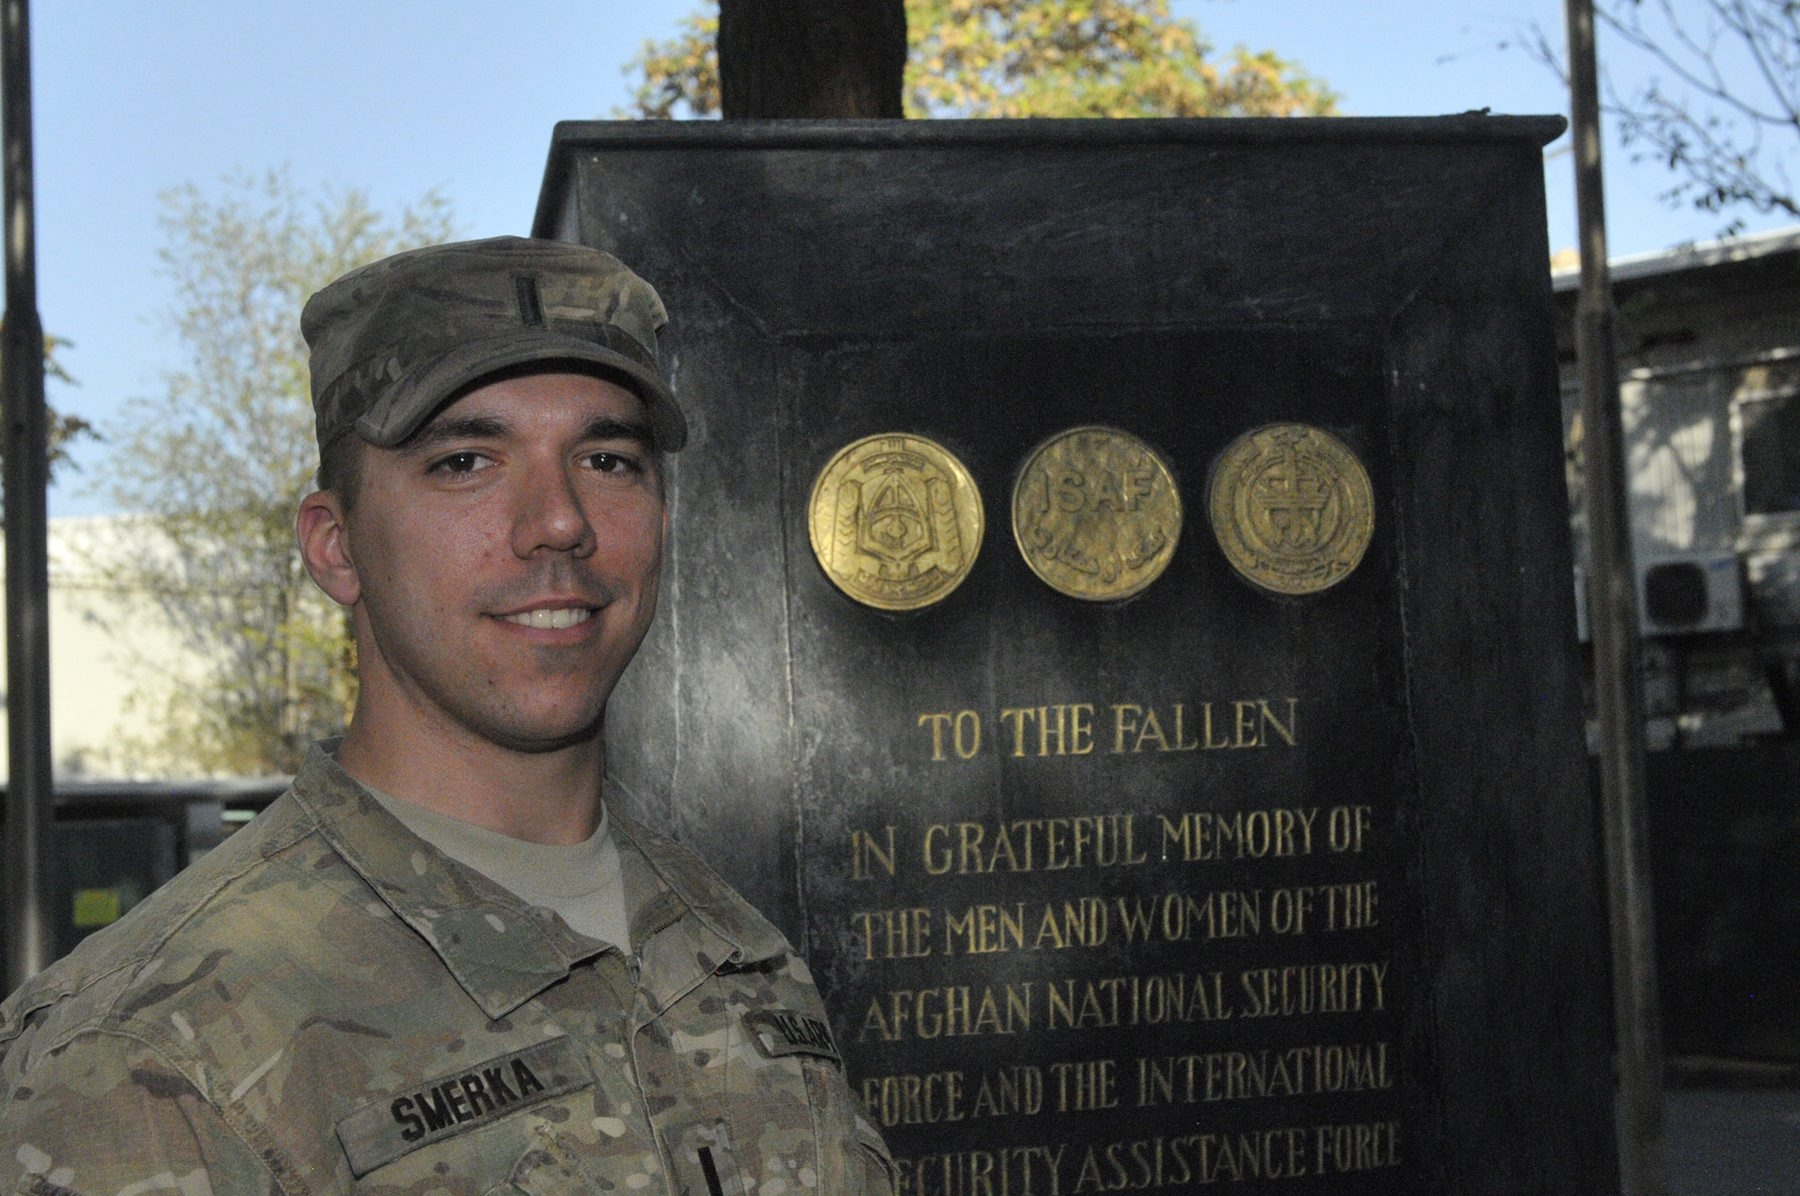 Army 1st Lt. Mark J. Smerka, a Canisius College grad, leads a platoon responsible for protecting U.S. State Department employees and civilian contractors traveling around Kabul.